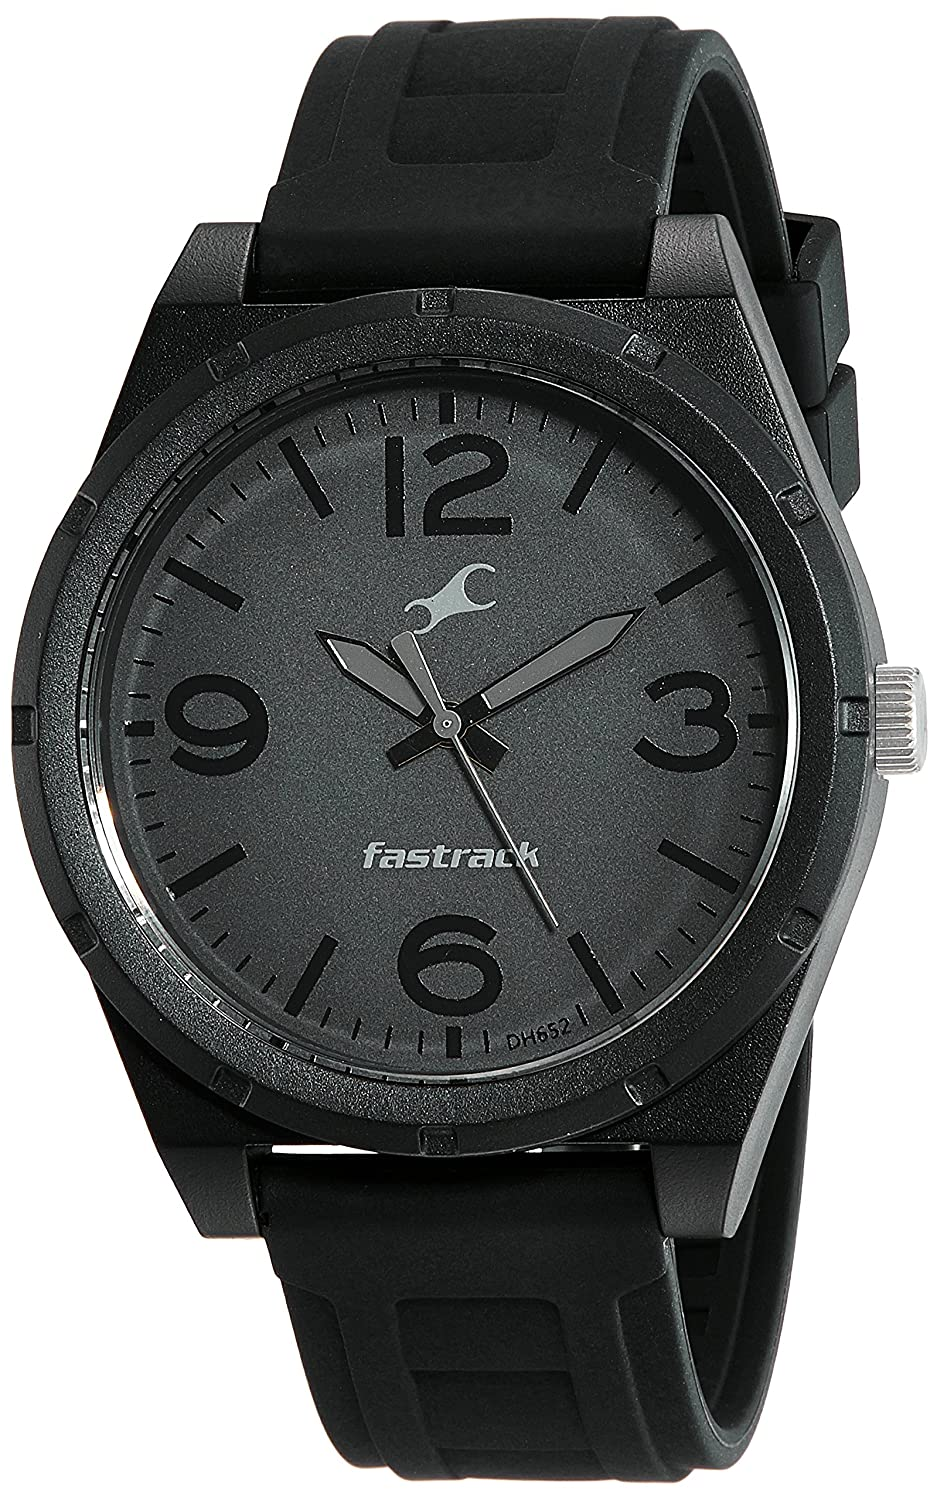 Fastrack Best Mens Watches Under 1000 Rupees in India